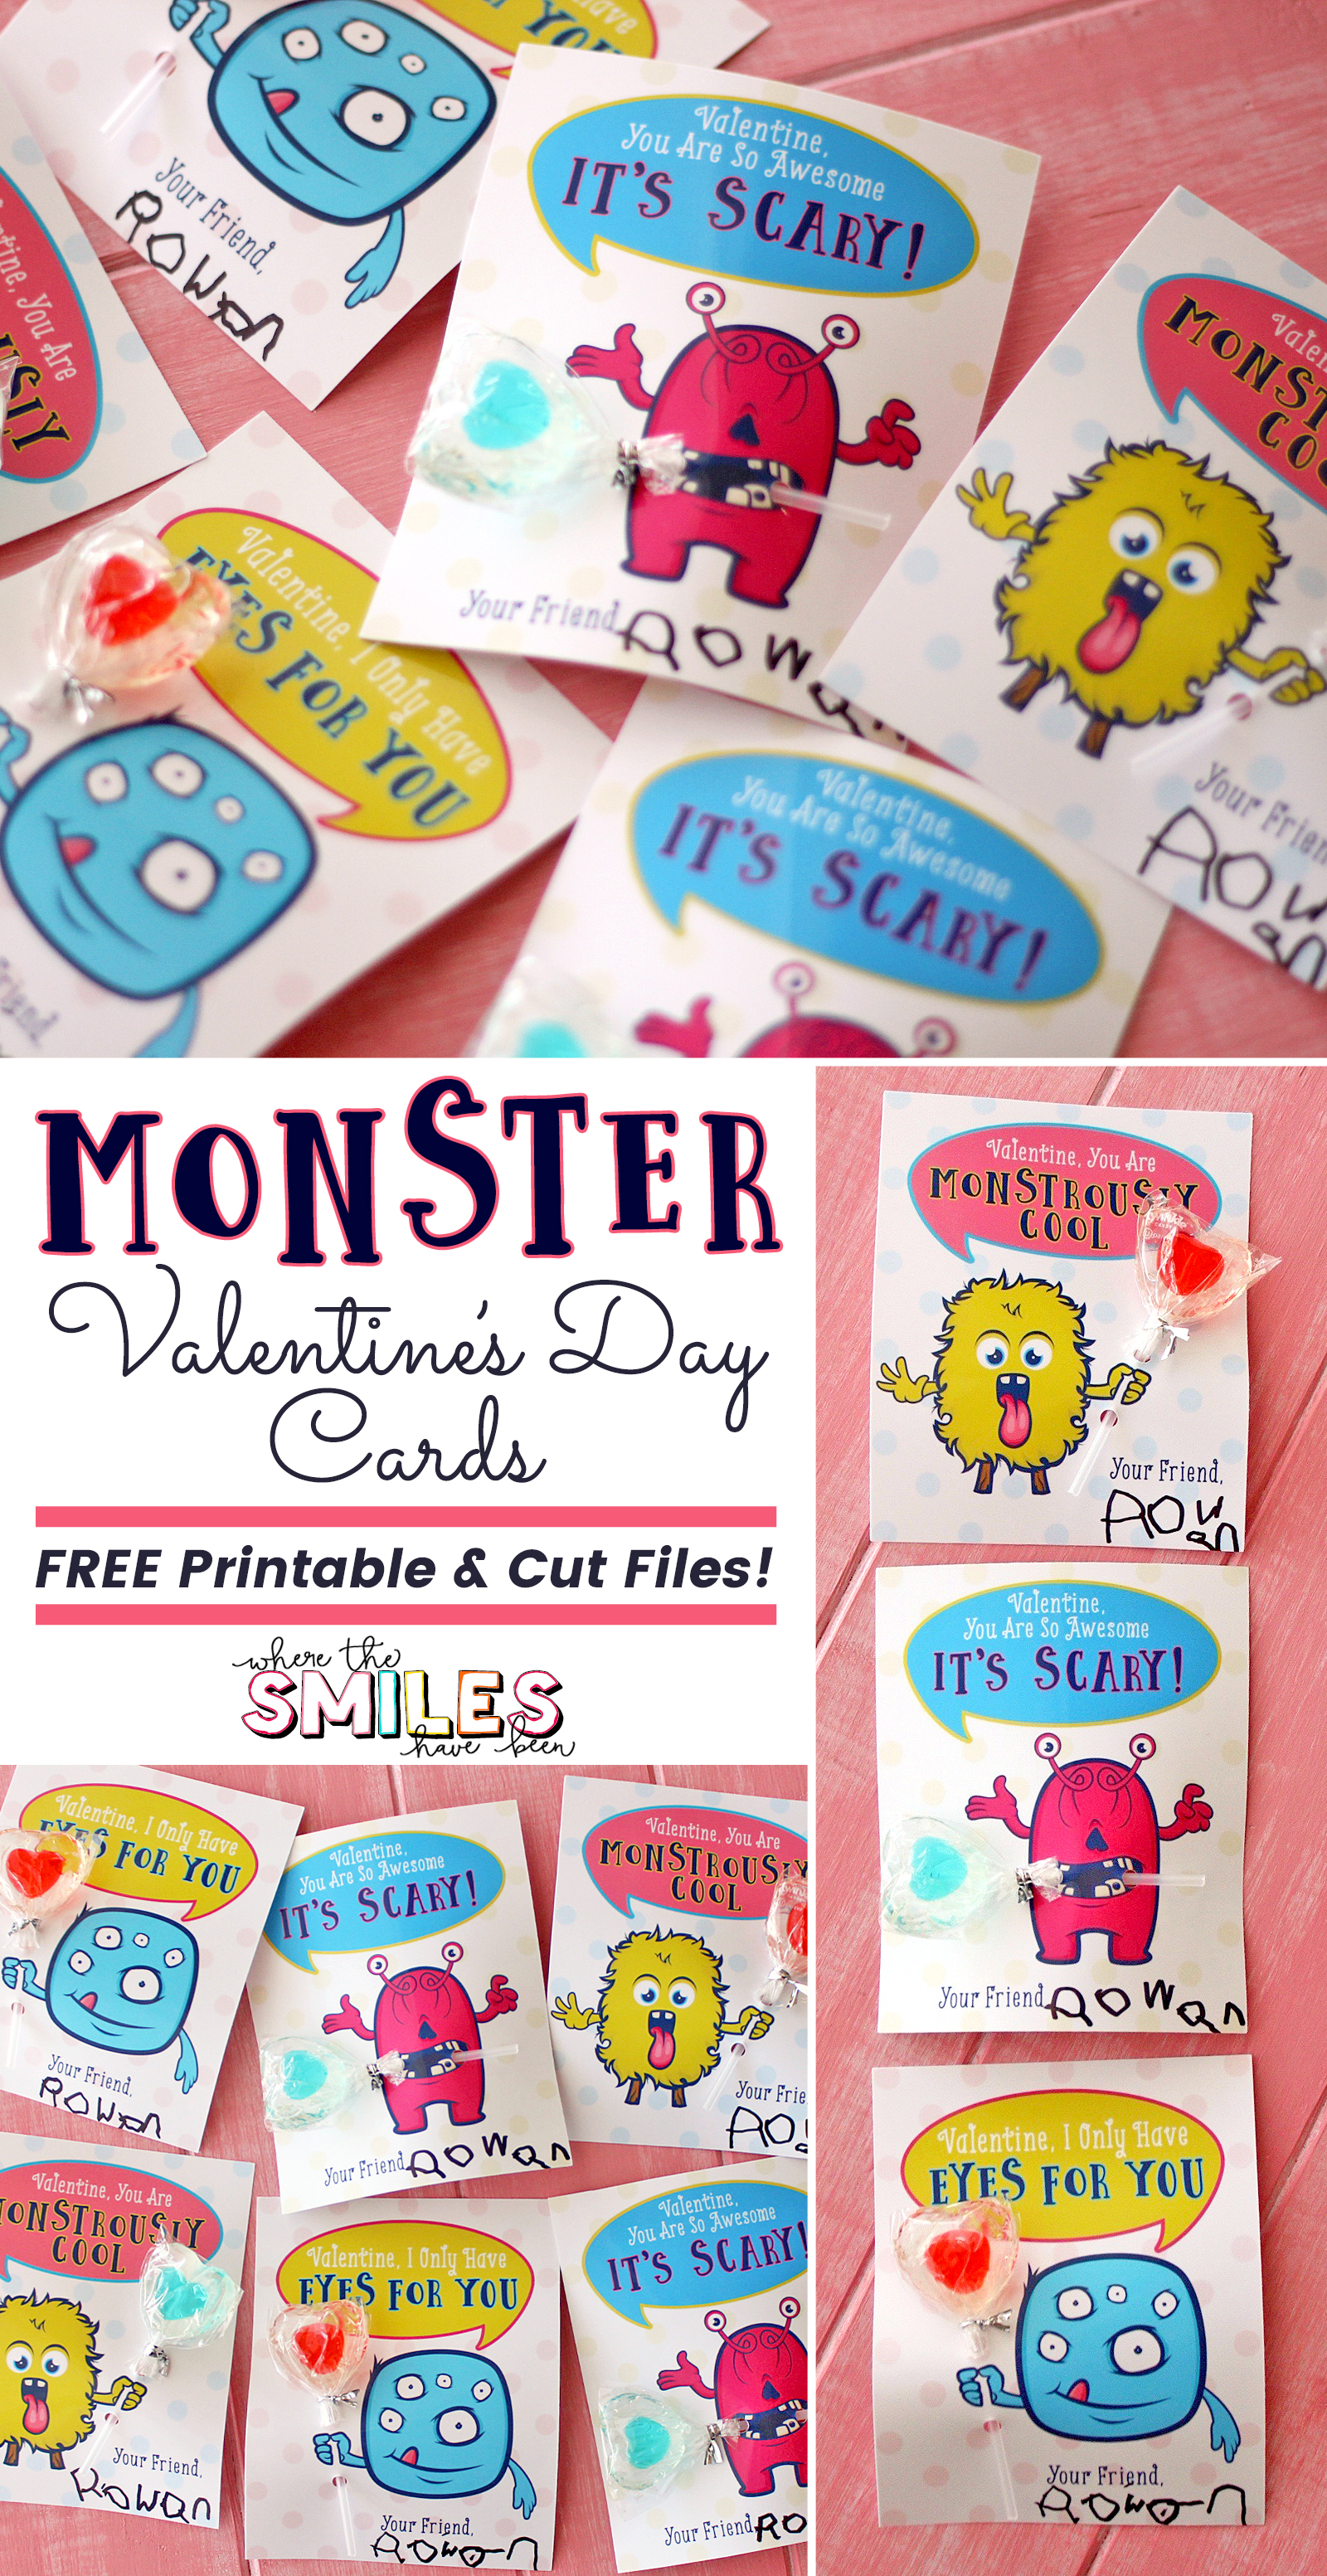 FREE Monster Valentine's Day Cards